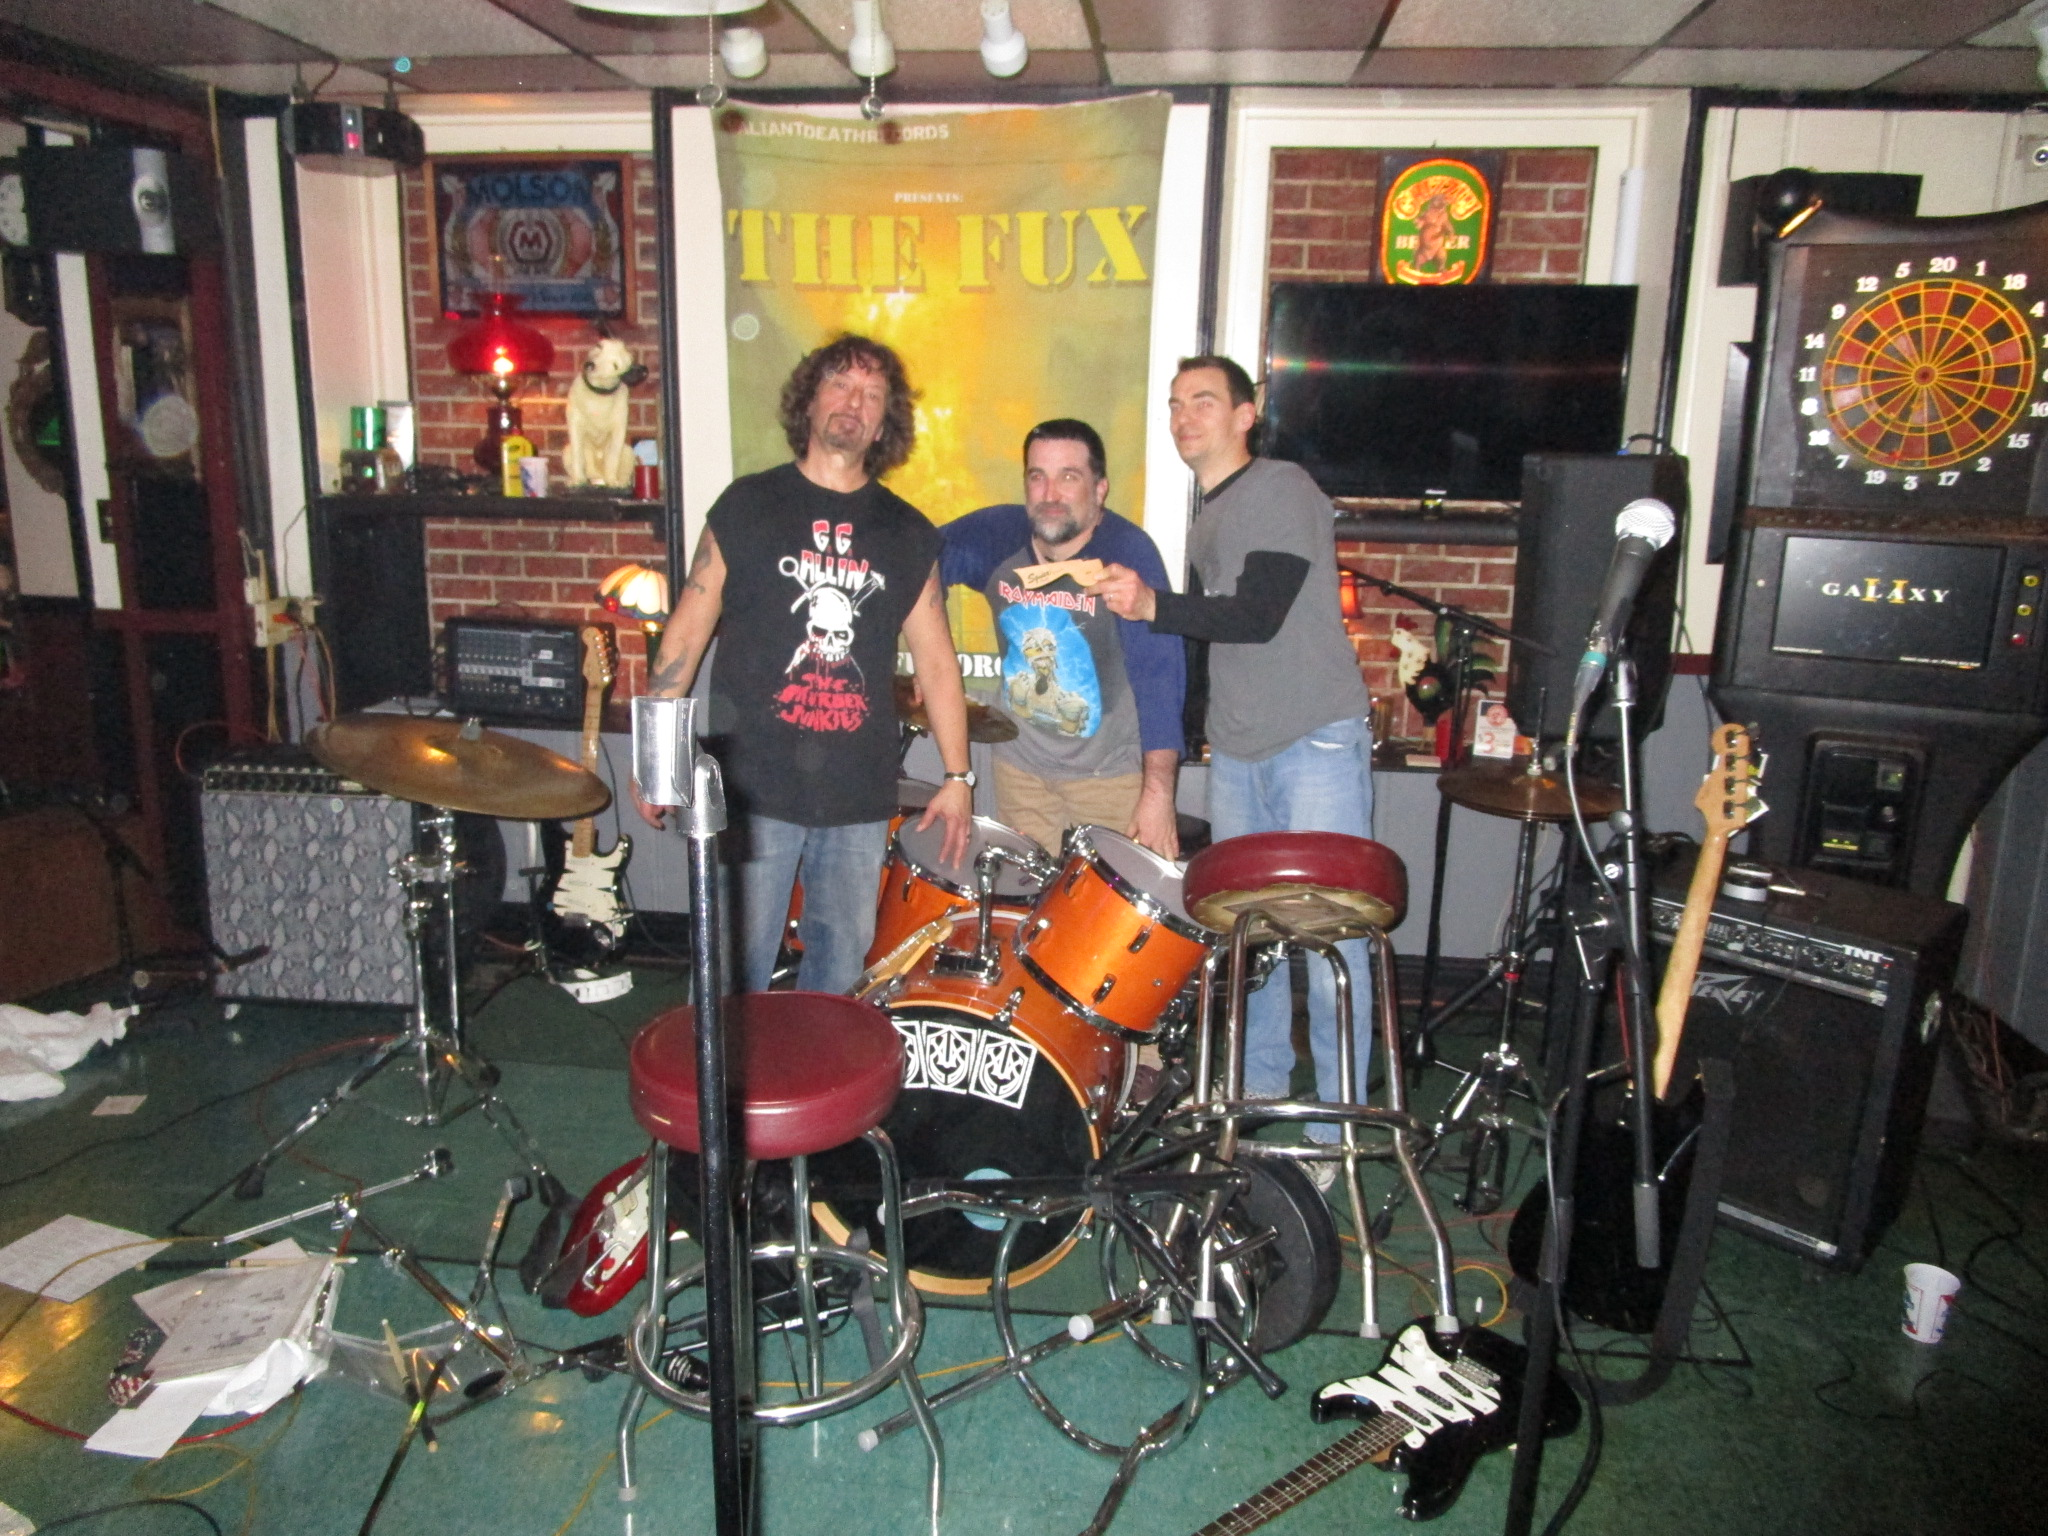 The FUX BAND